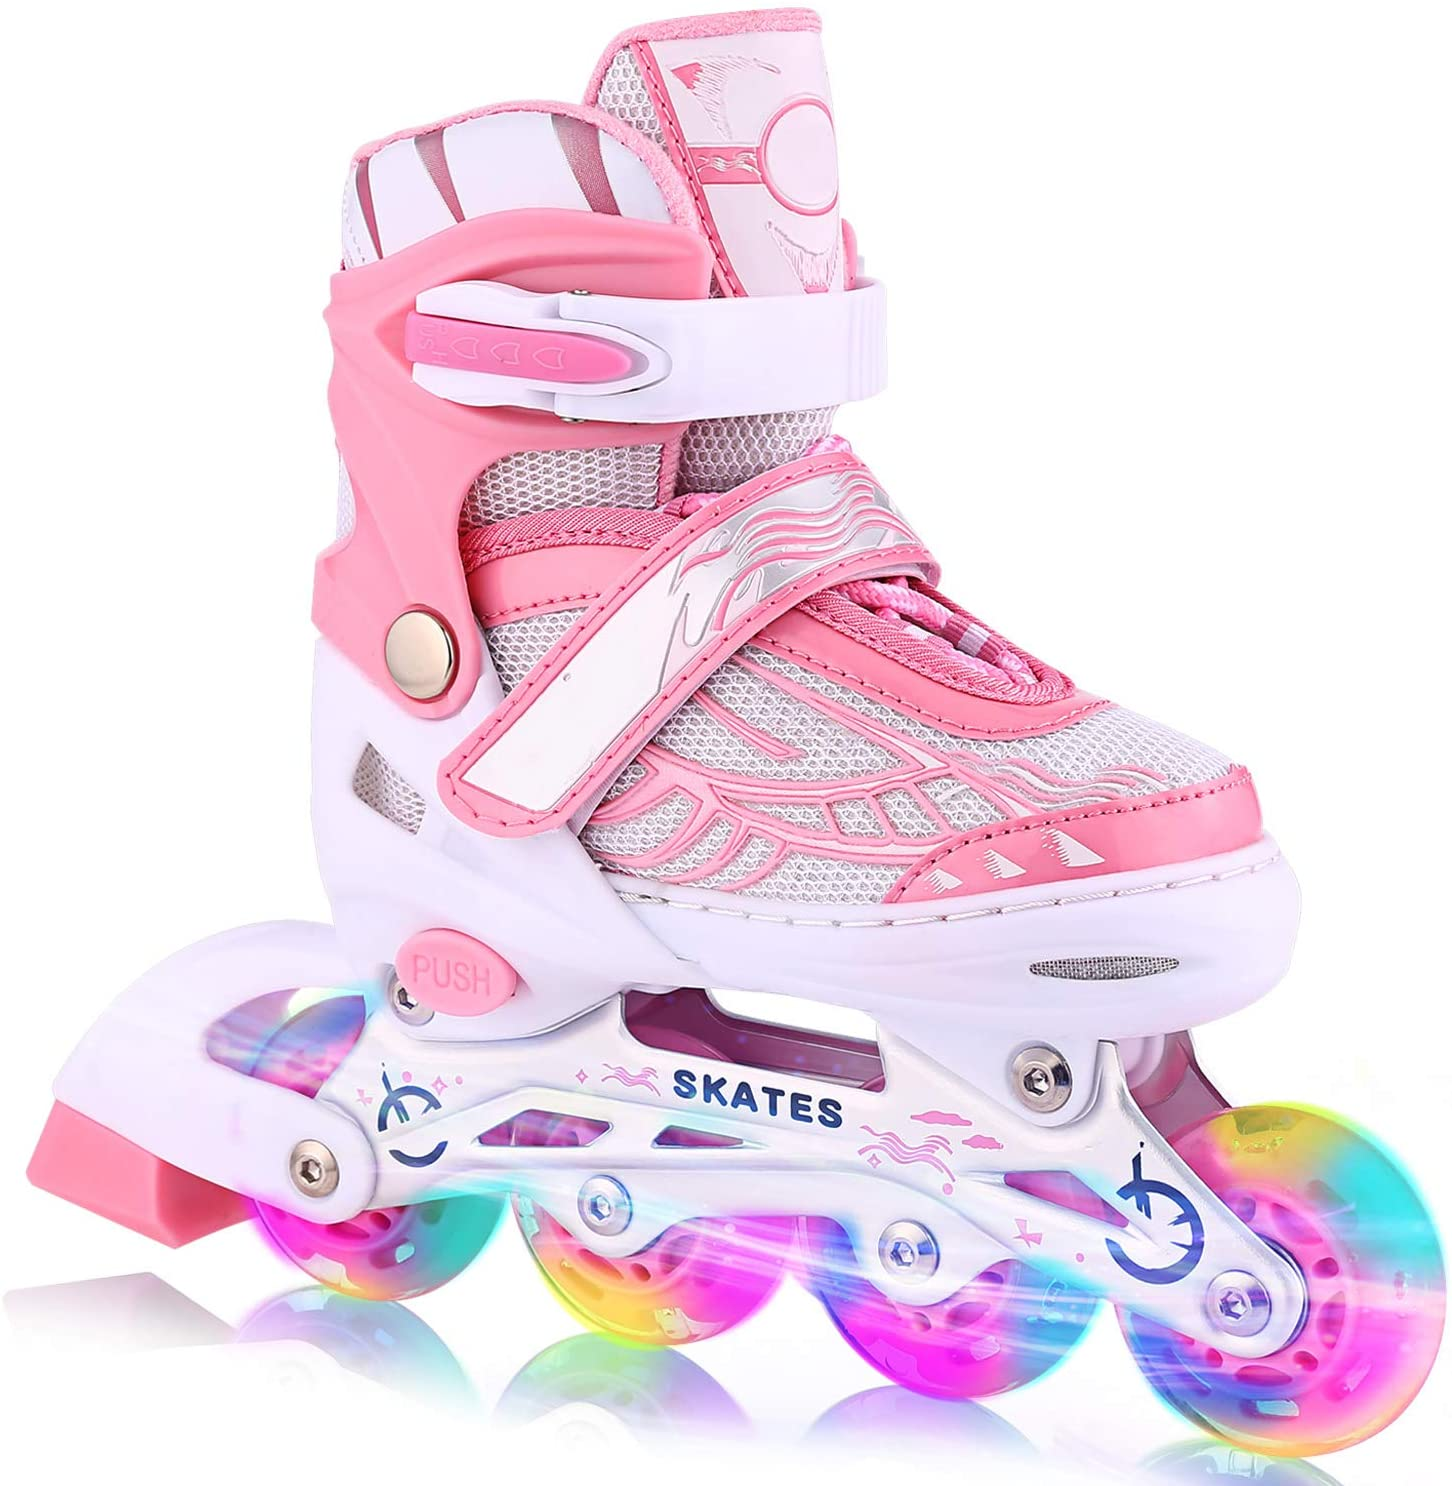 Weskate Don't miss the campaign Adjustable Inline Skates for Kids Adults Full Women and List price